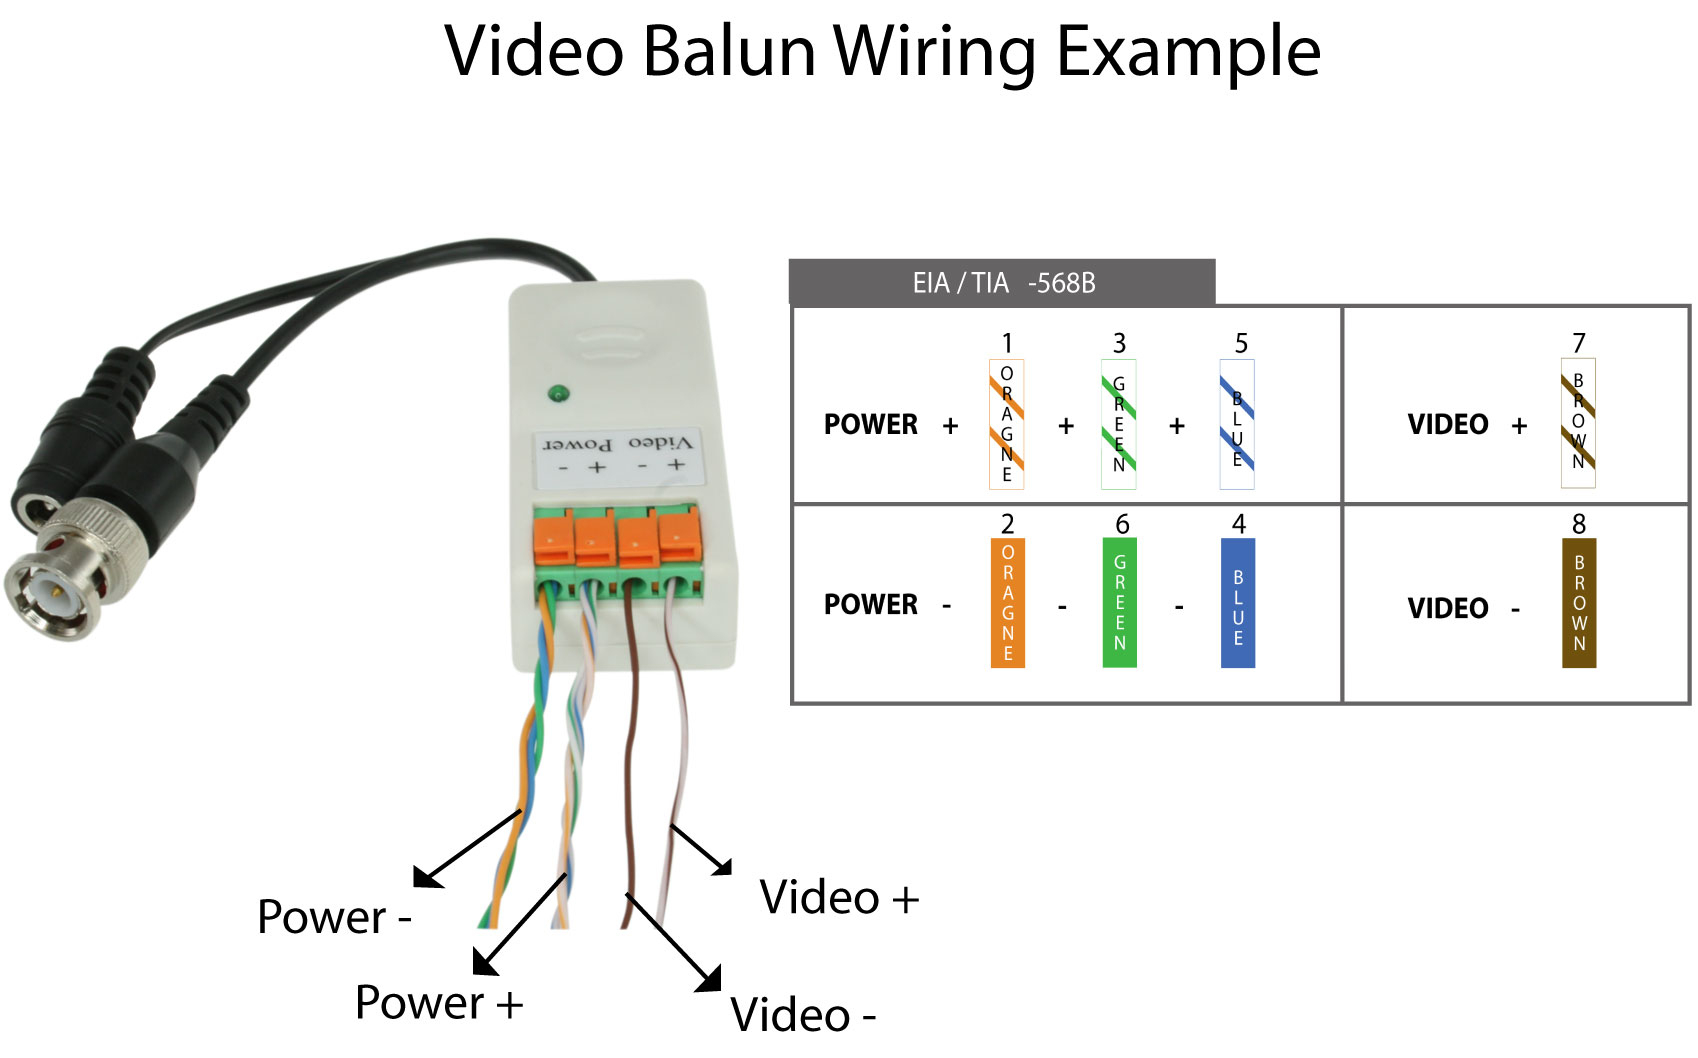 Rj45 Wiring Diagram Patch Cable | Manual E-Books - Wiring Diagram Of Usb Ab Cable